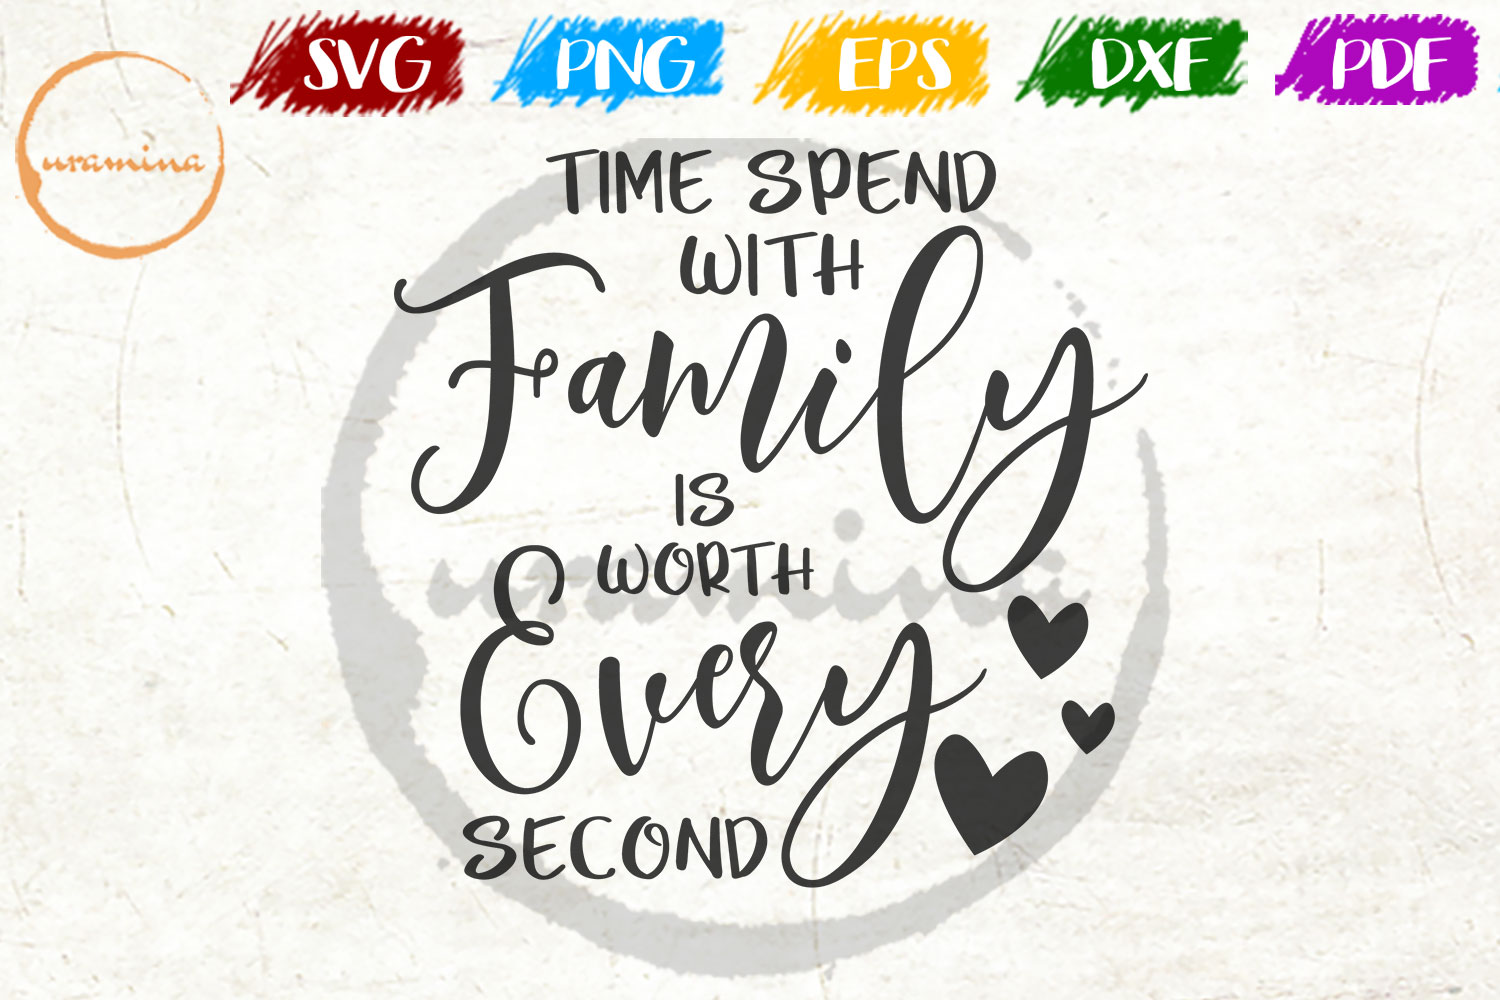 Download Free Time Spent With Family Is Worth Graphic By Uramina Creative for Cricut Explore, Silhouette and other cutting machines.